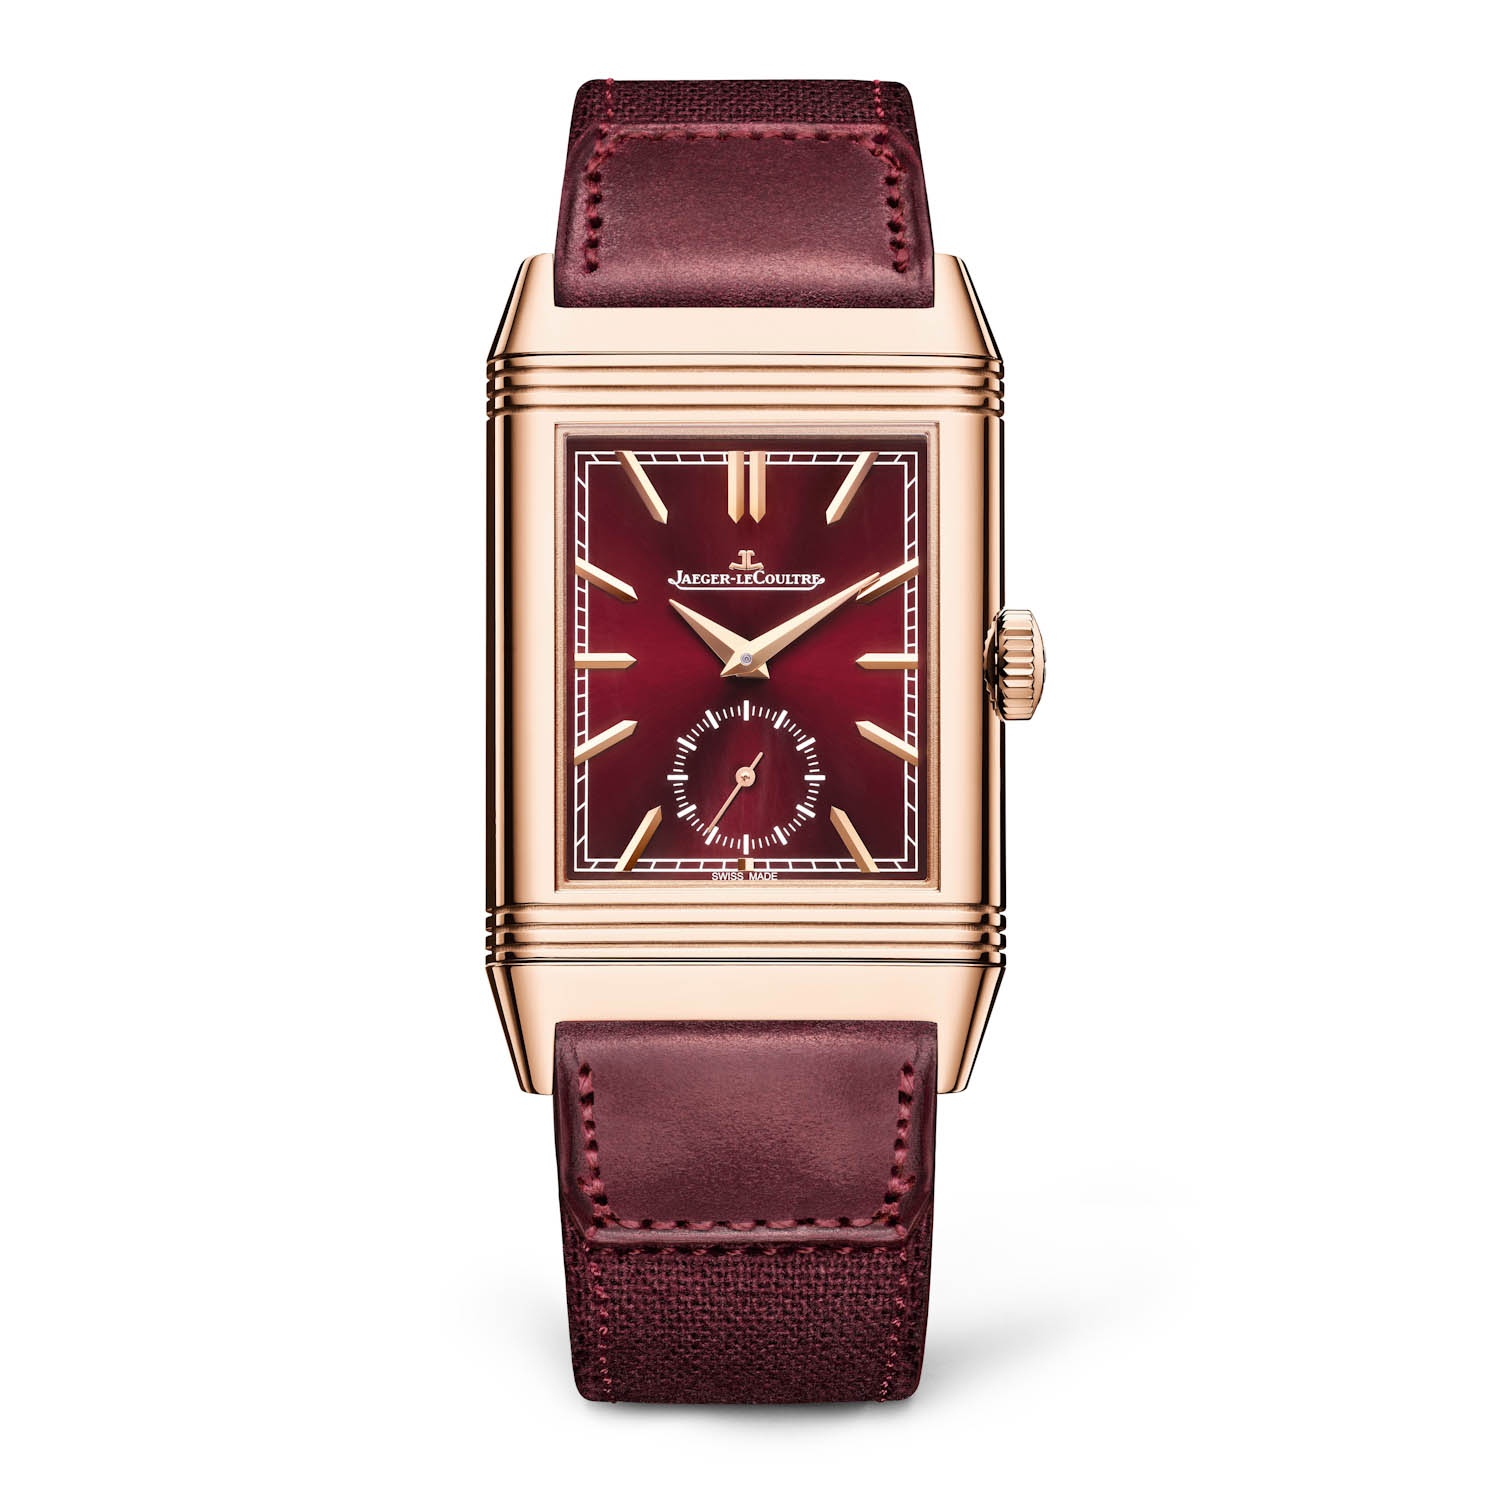 Reverso Tribute Duoface Fagliano timeandwatches.pl